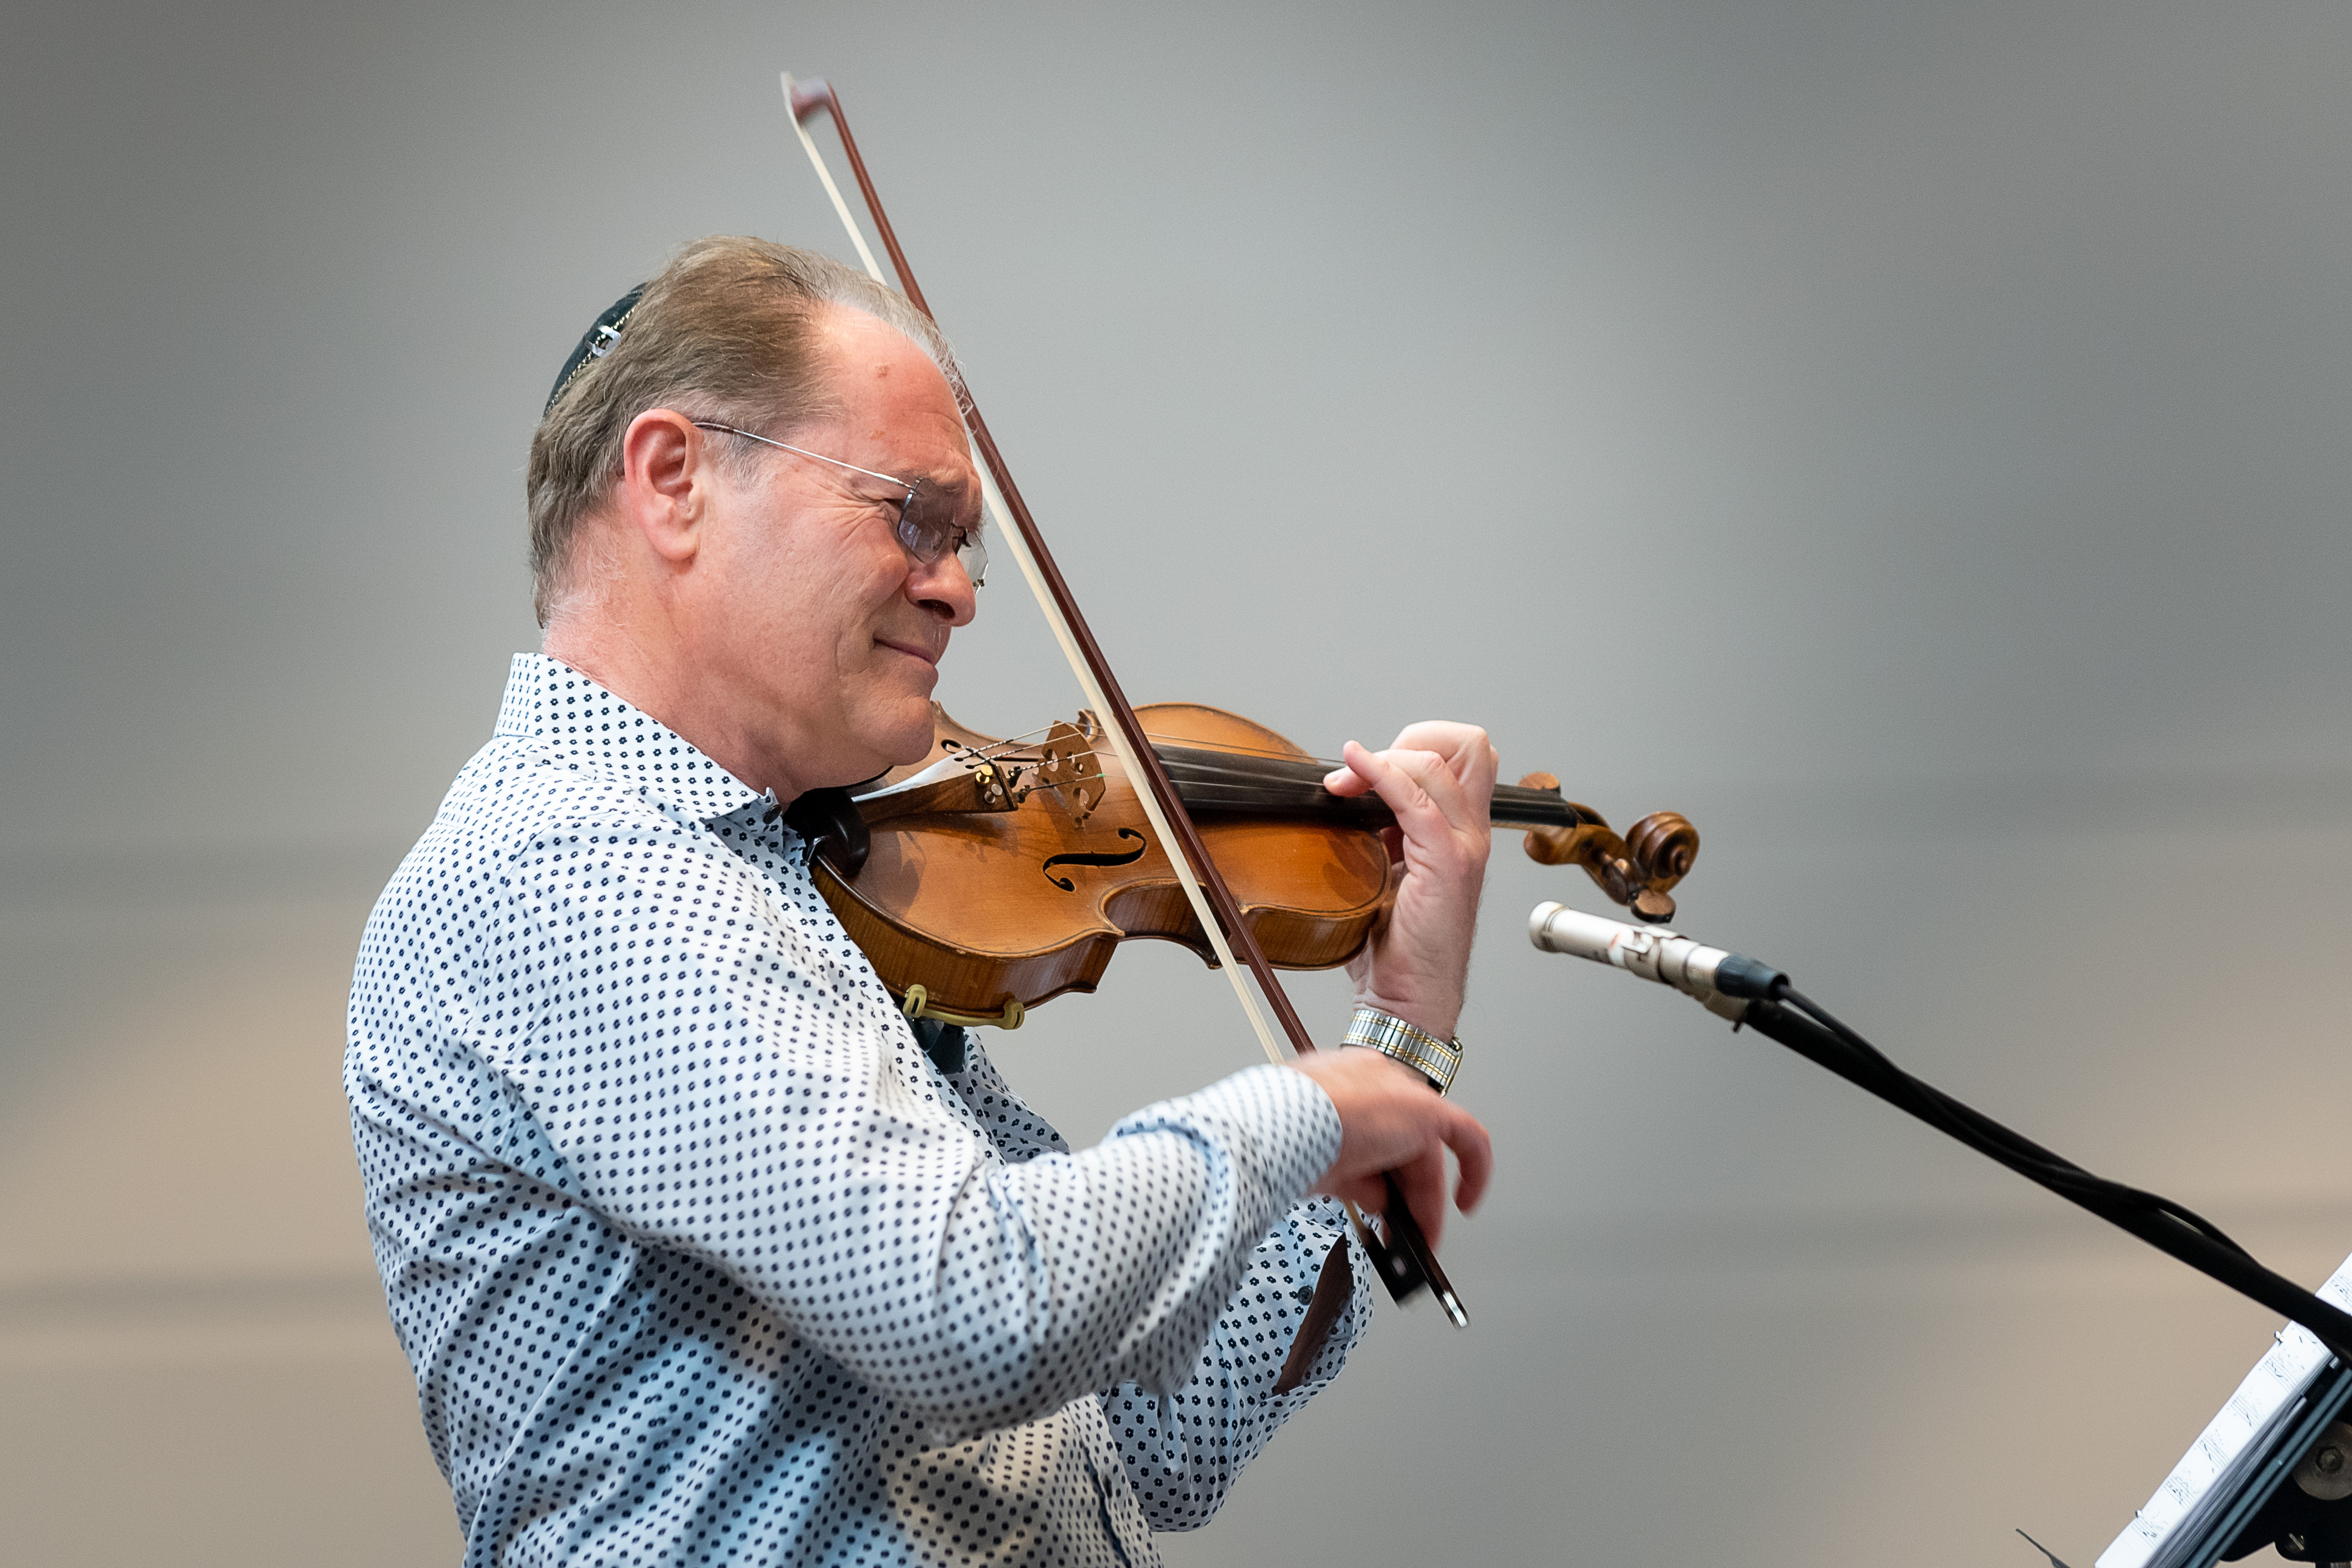 Cantor Tunitsky playing his violin